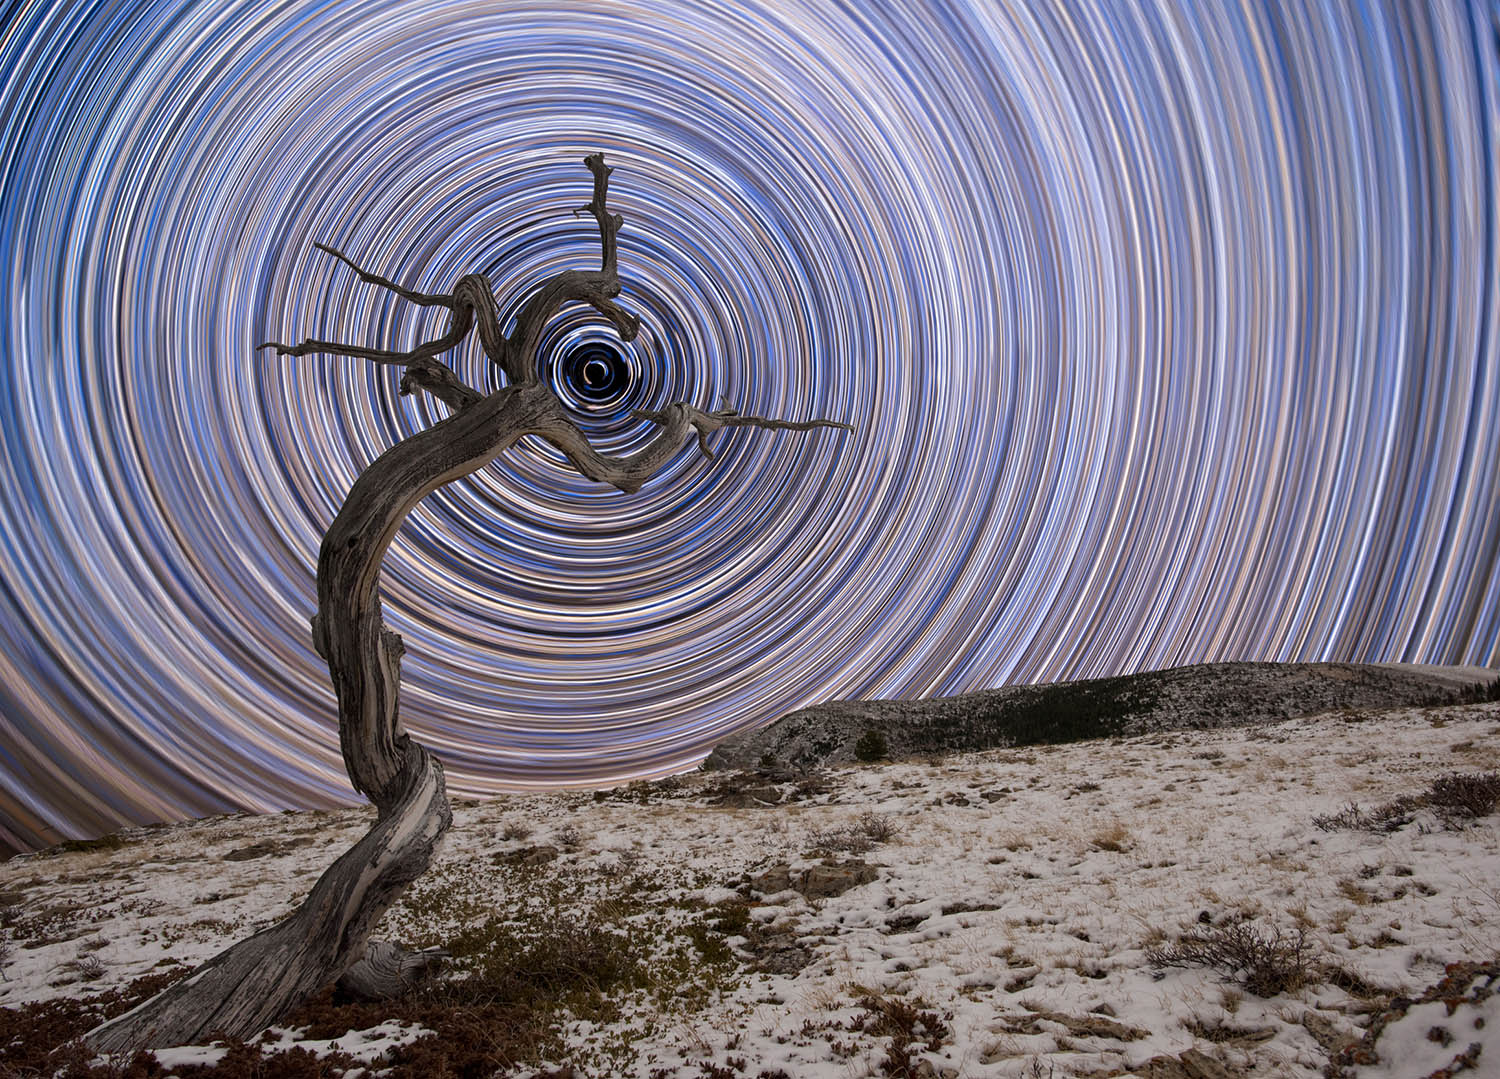 Astronomy Photographer of the Year shortlist delivers extraordinary perspectives